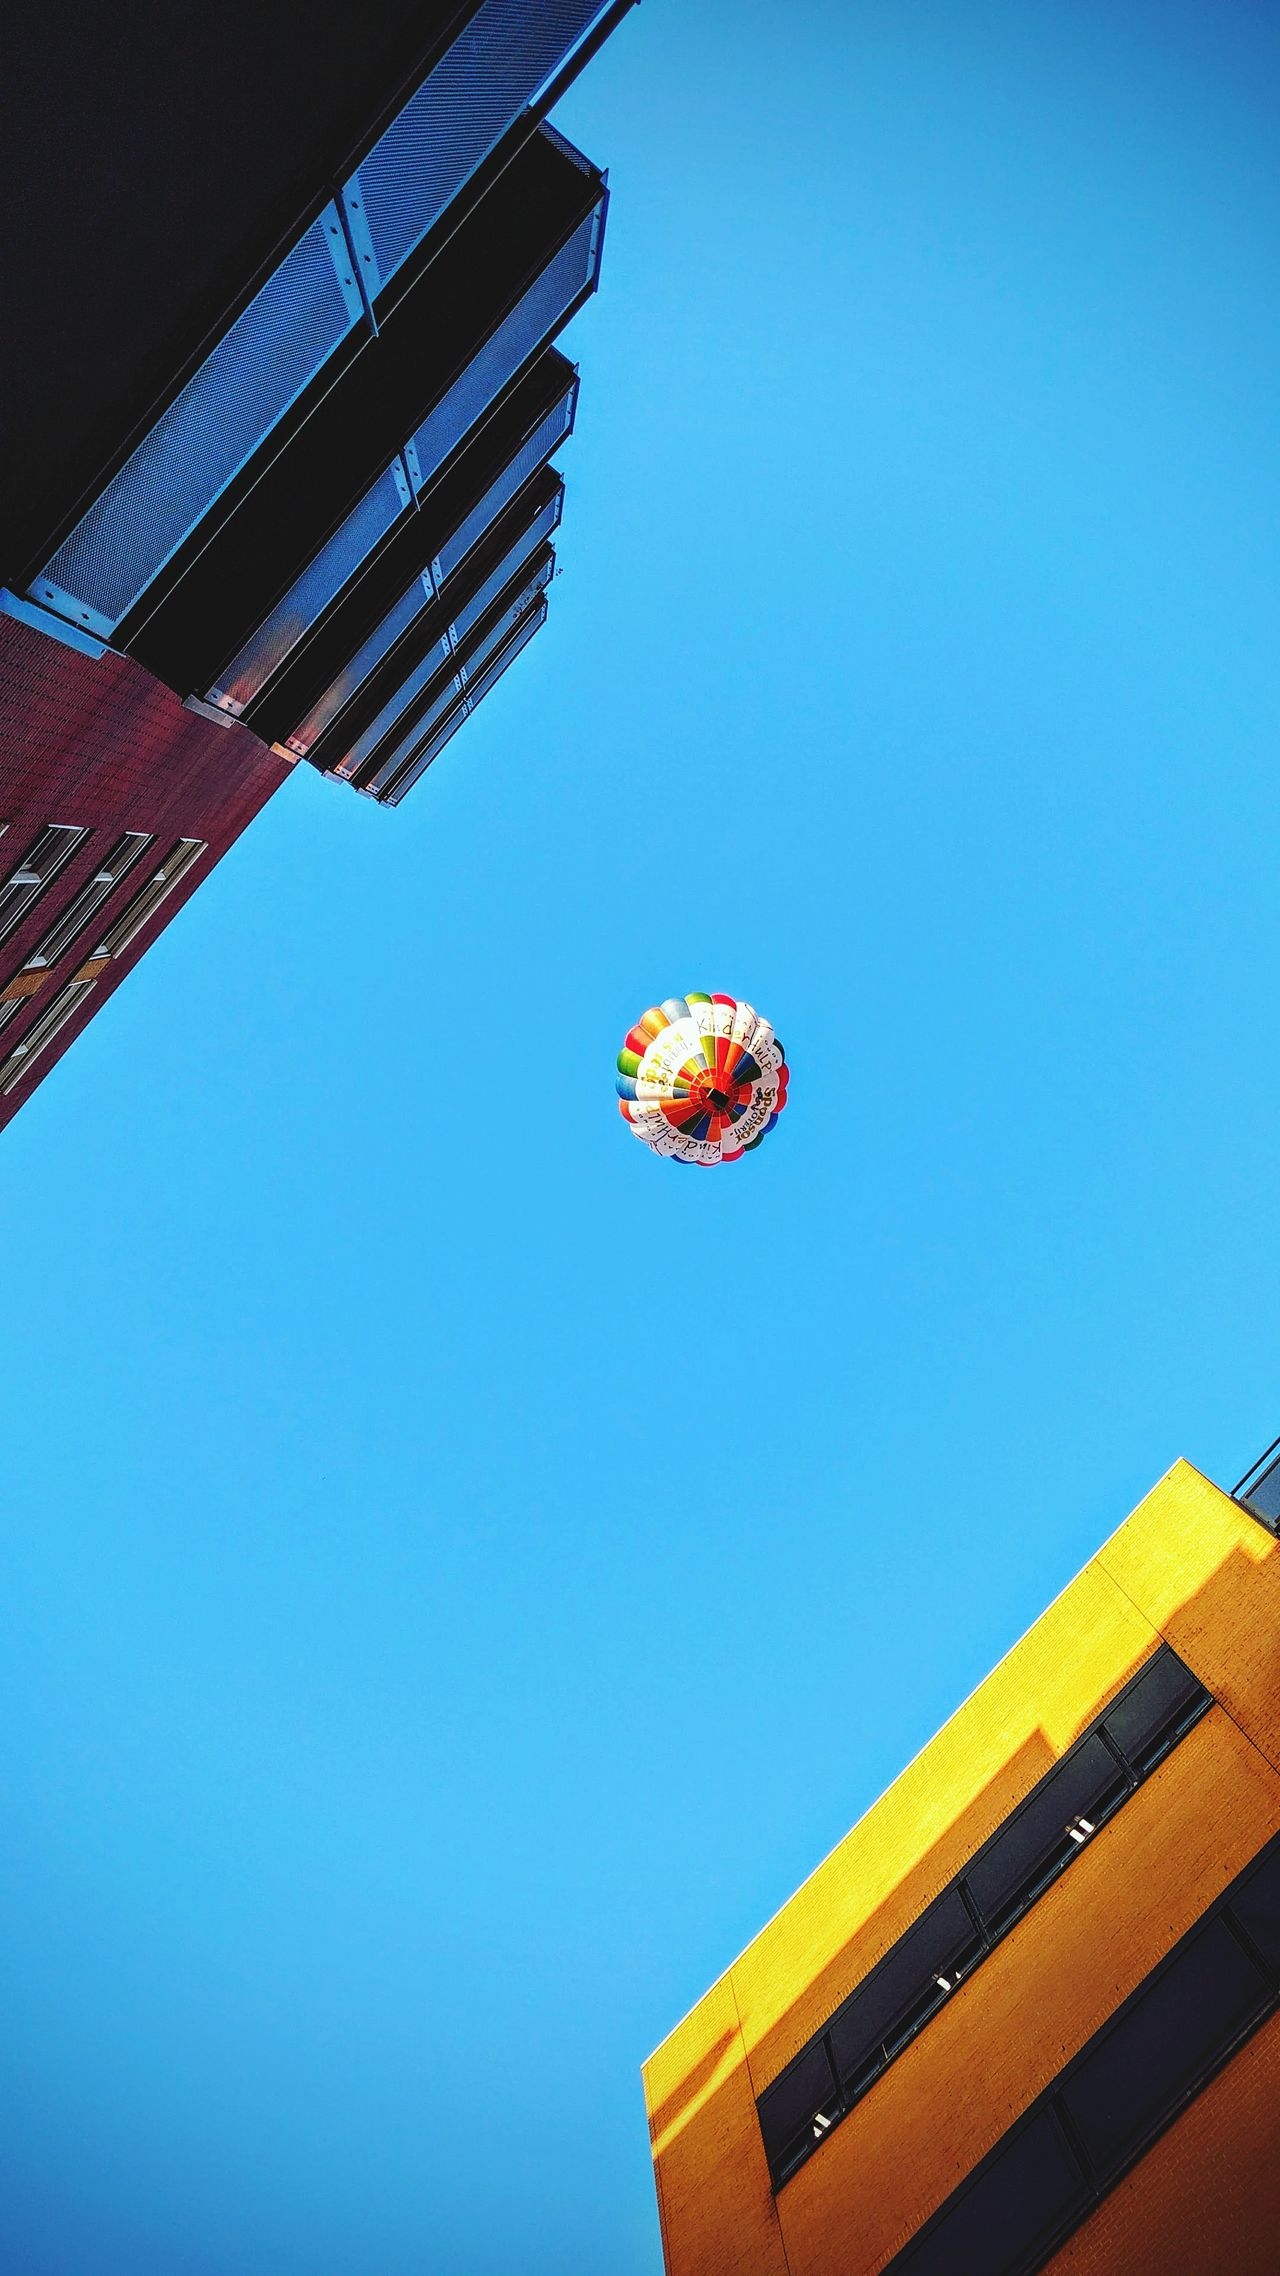 Sky No People Architecture Day Hot Air Balloon Hengelo Netherlands Air Balloon Blue Skies Happy Days